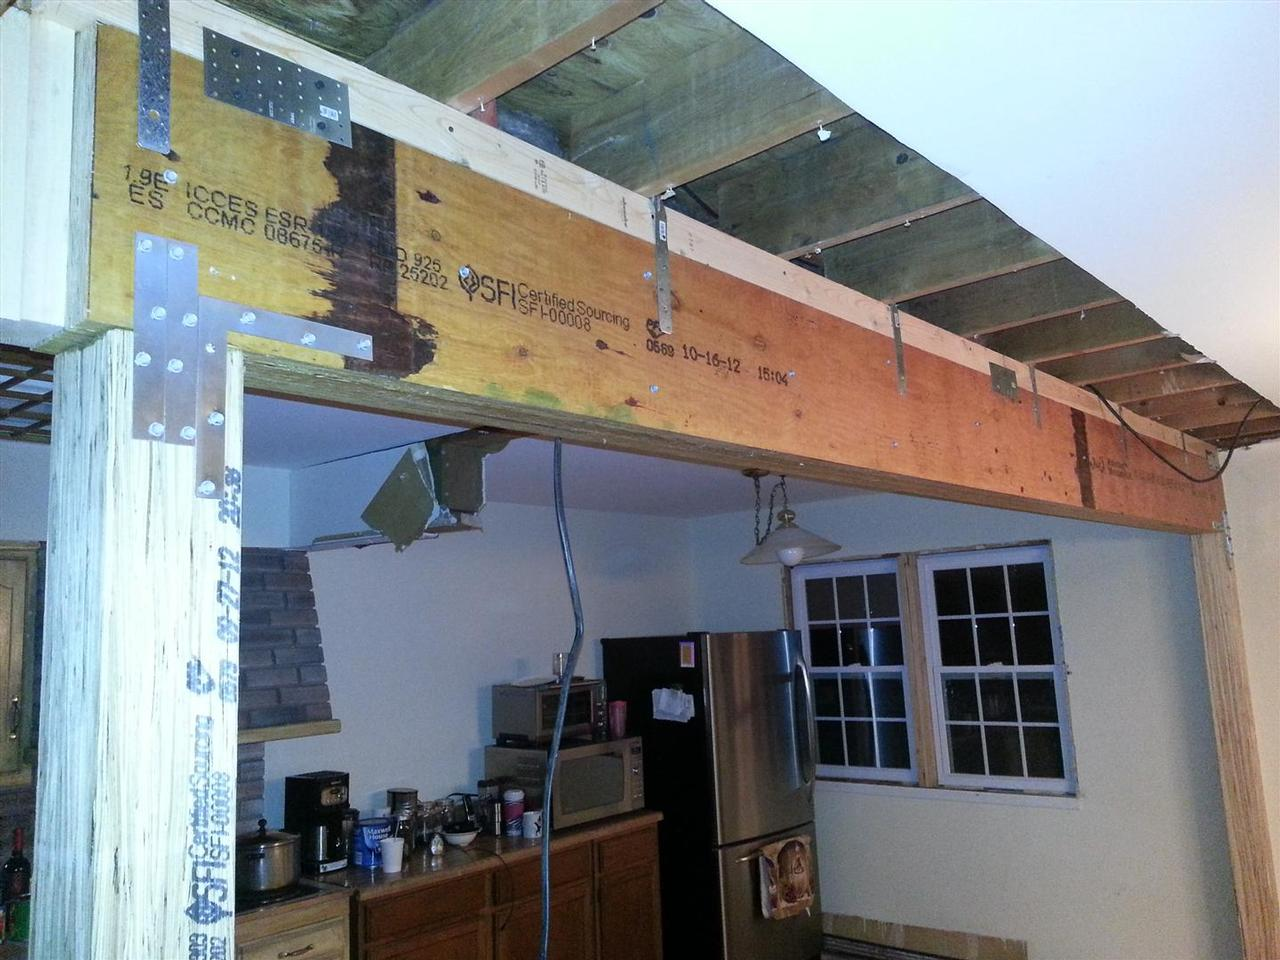 115: I Put The Long Hurrican Ties Every Other Floor Joist, While The Others